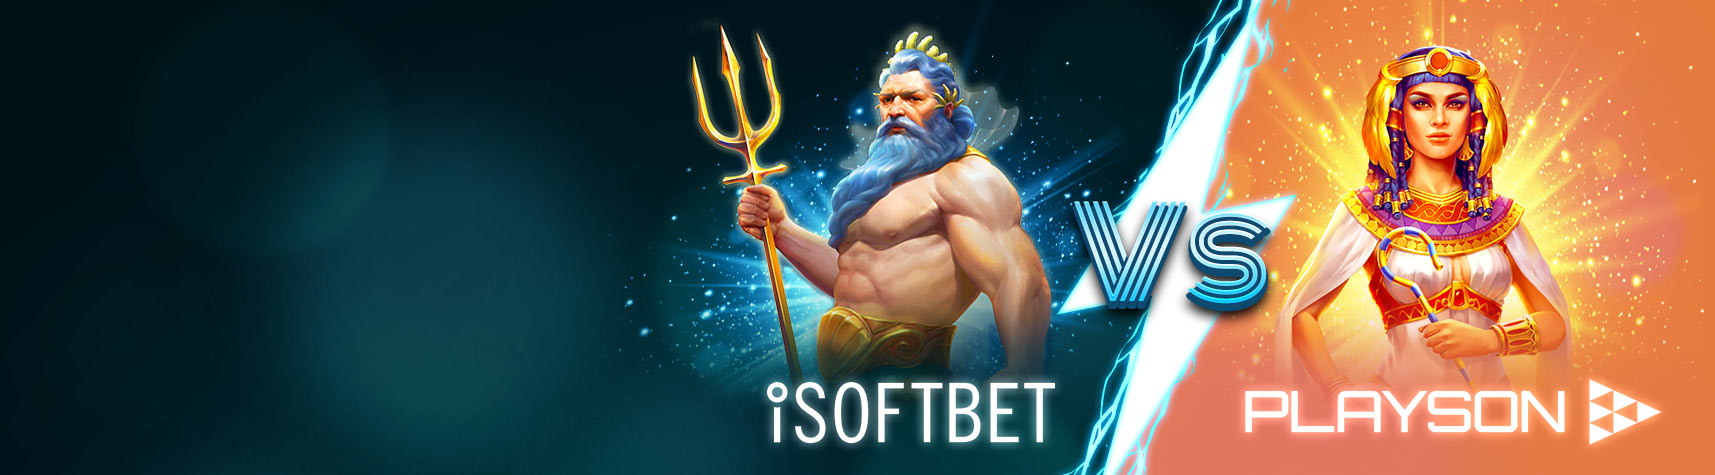 IsoftbetPlayson Tournament BG 1715x475